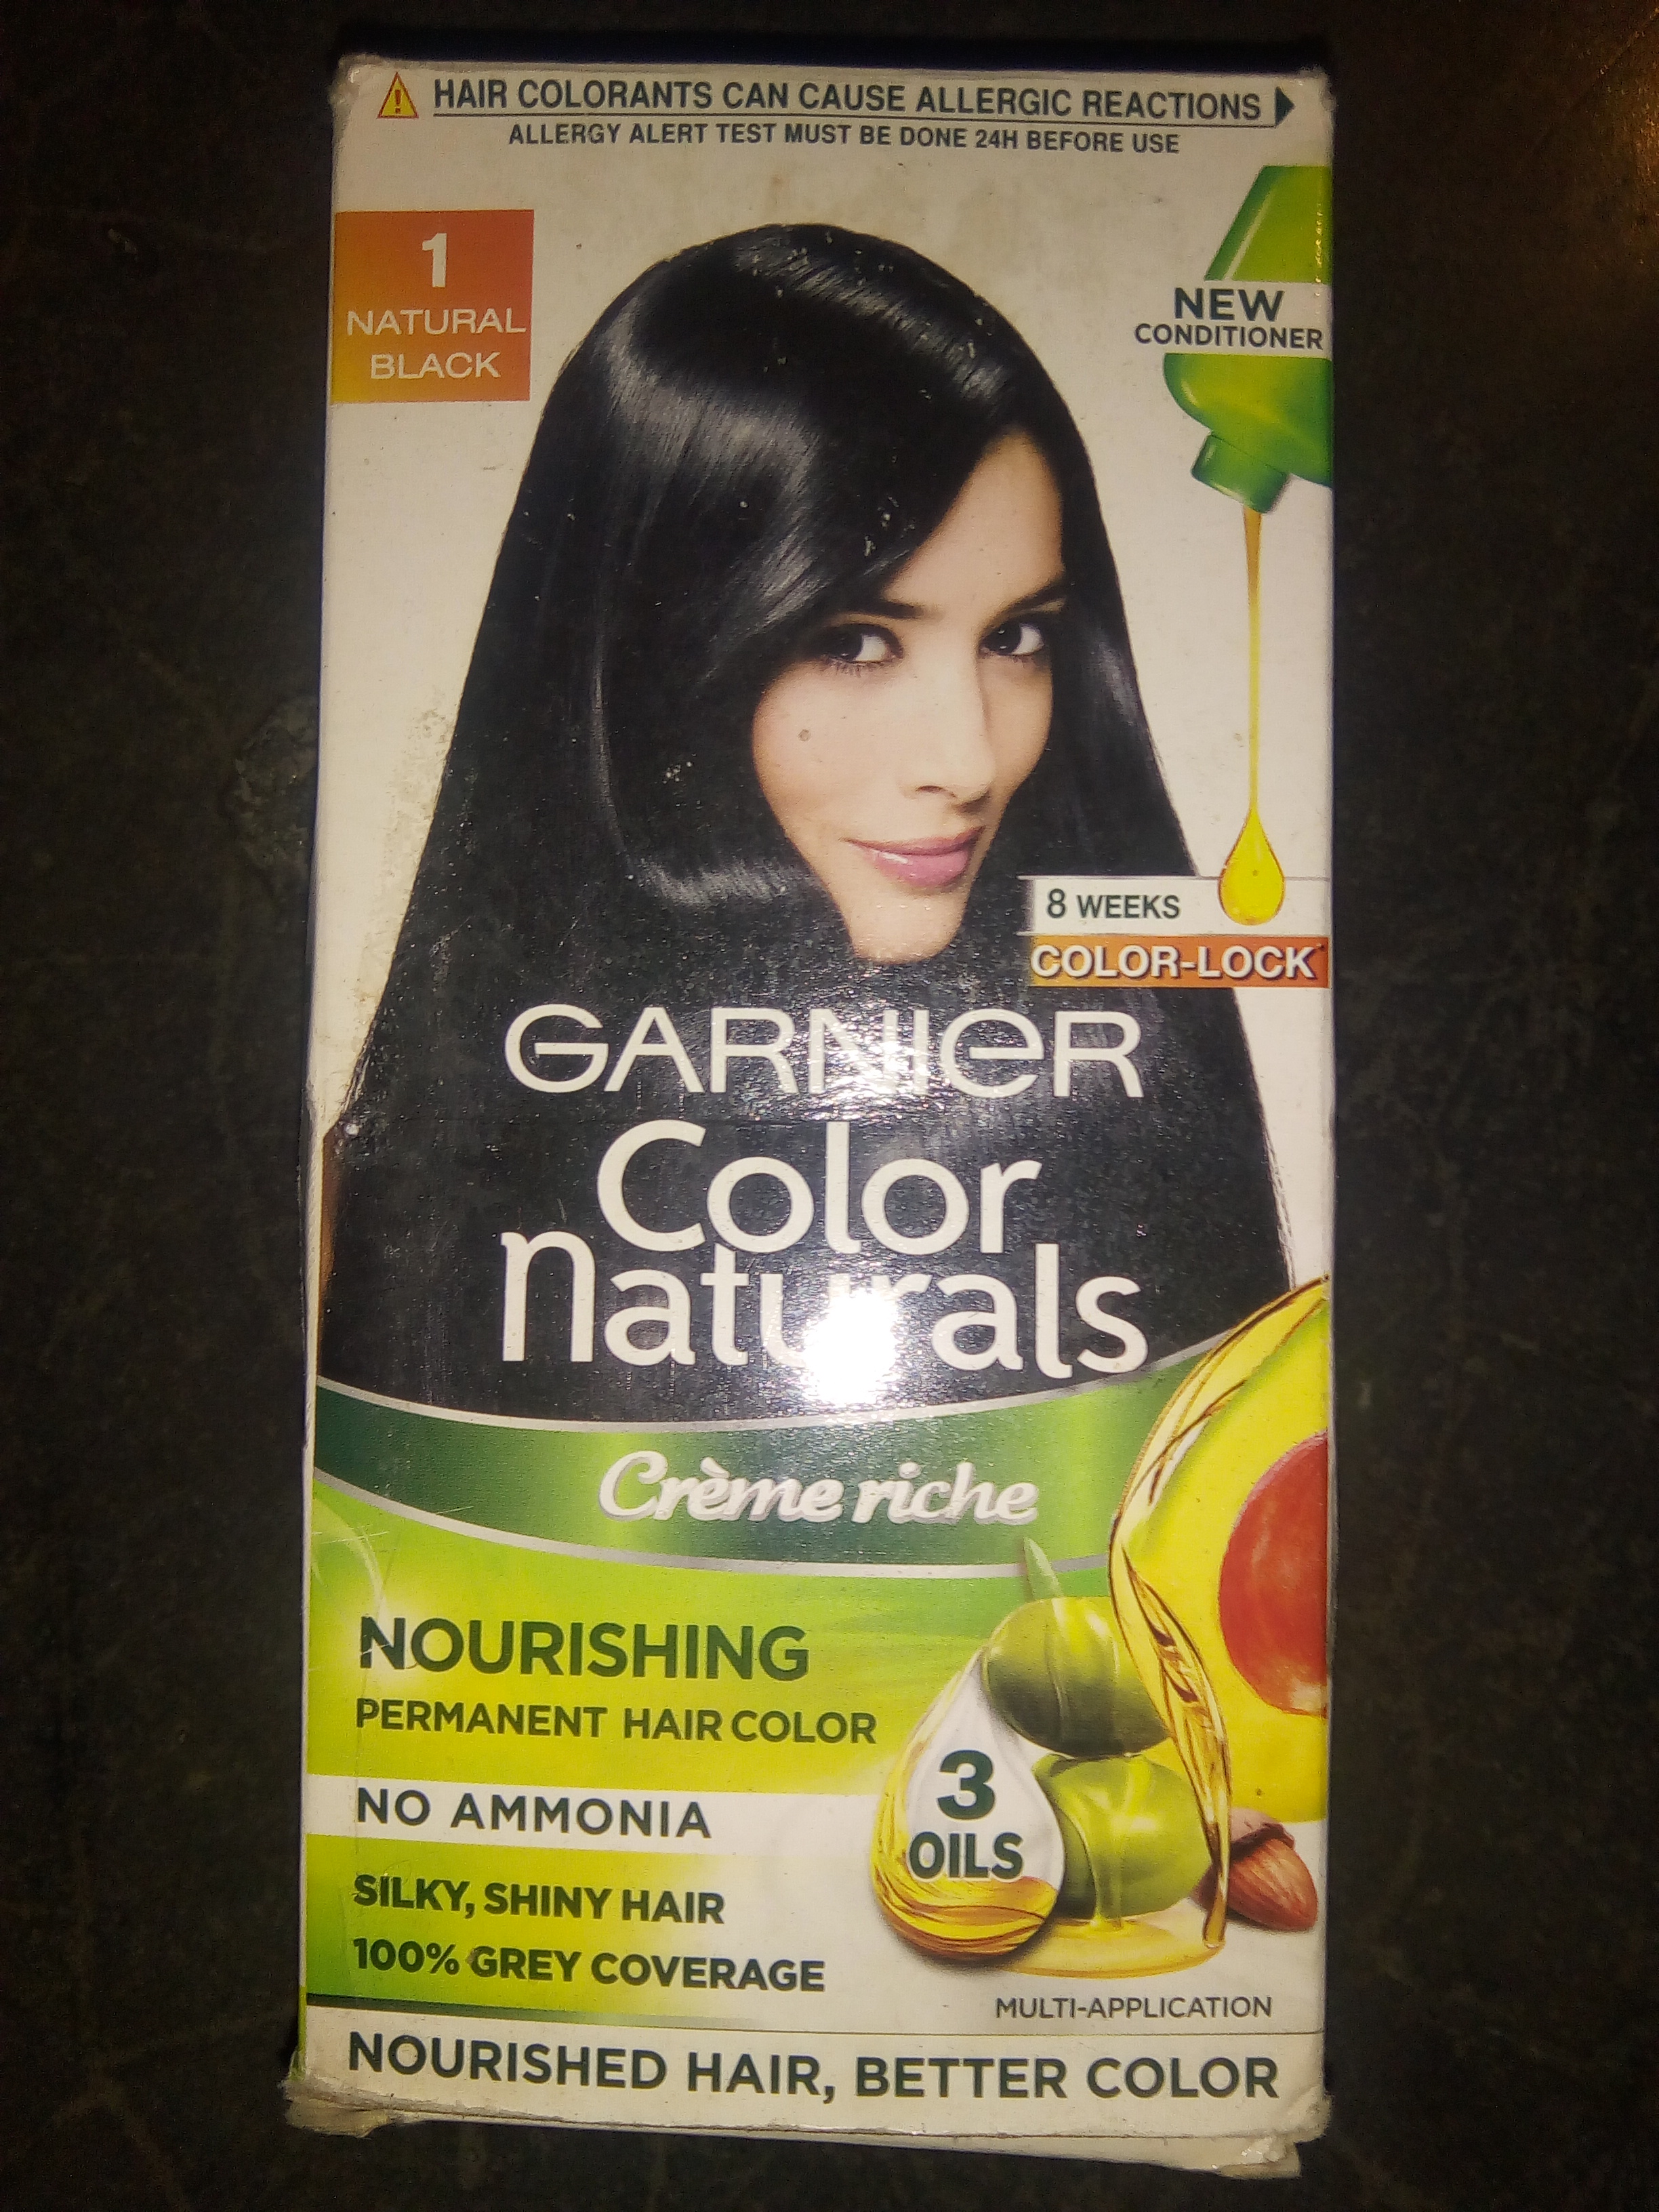 fab-review-Garnier Color Naturals Creme Hair Color-By aflyingsoul